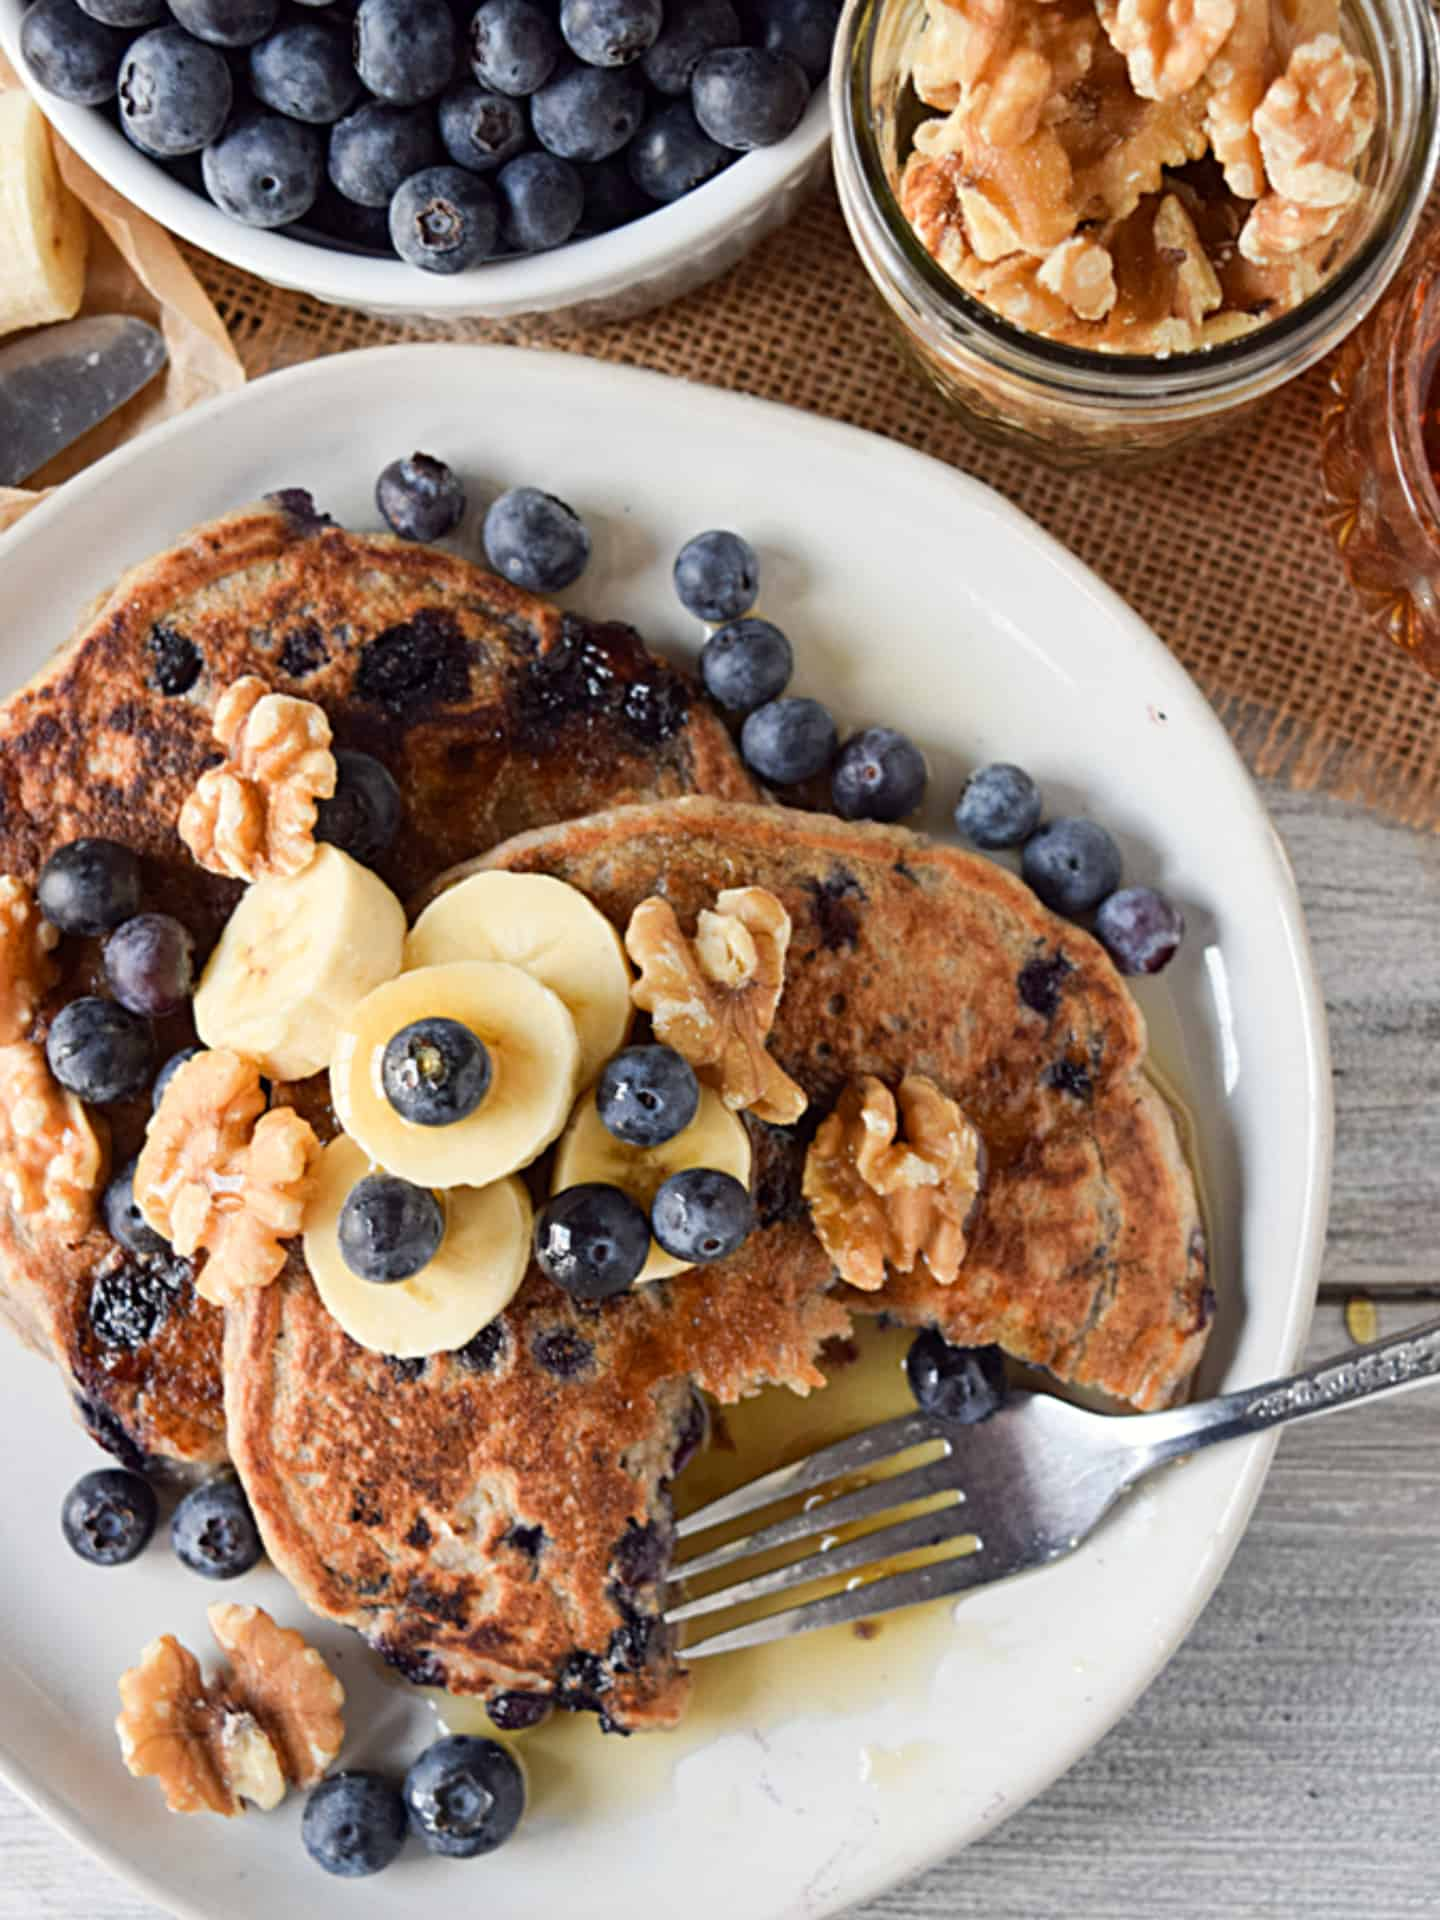 Vegan blueberry pancakes with fork.